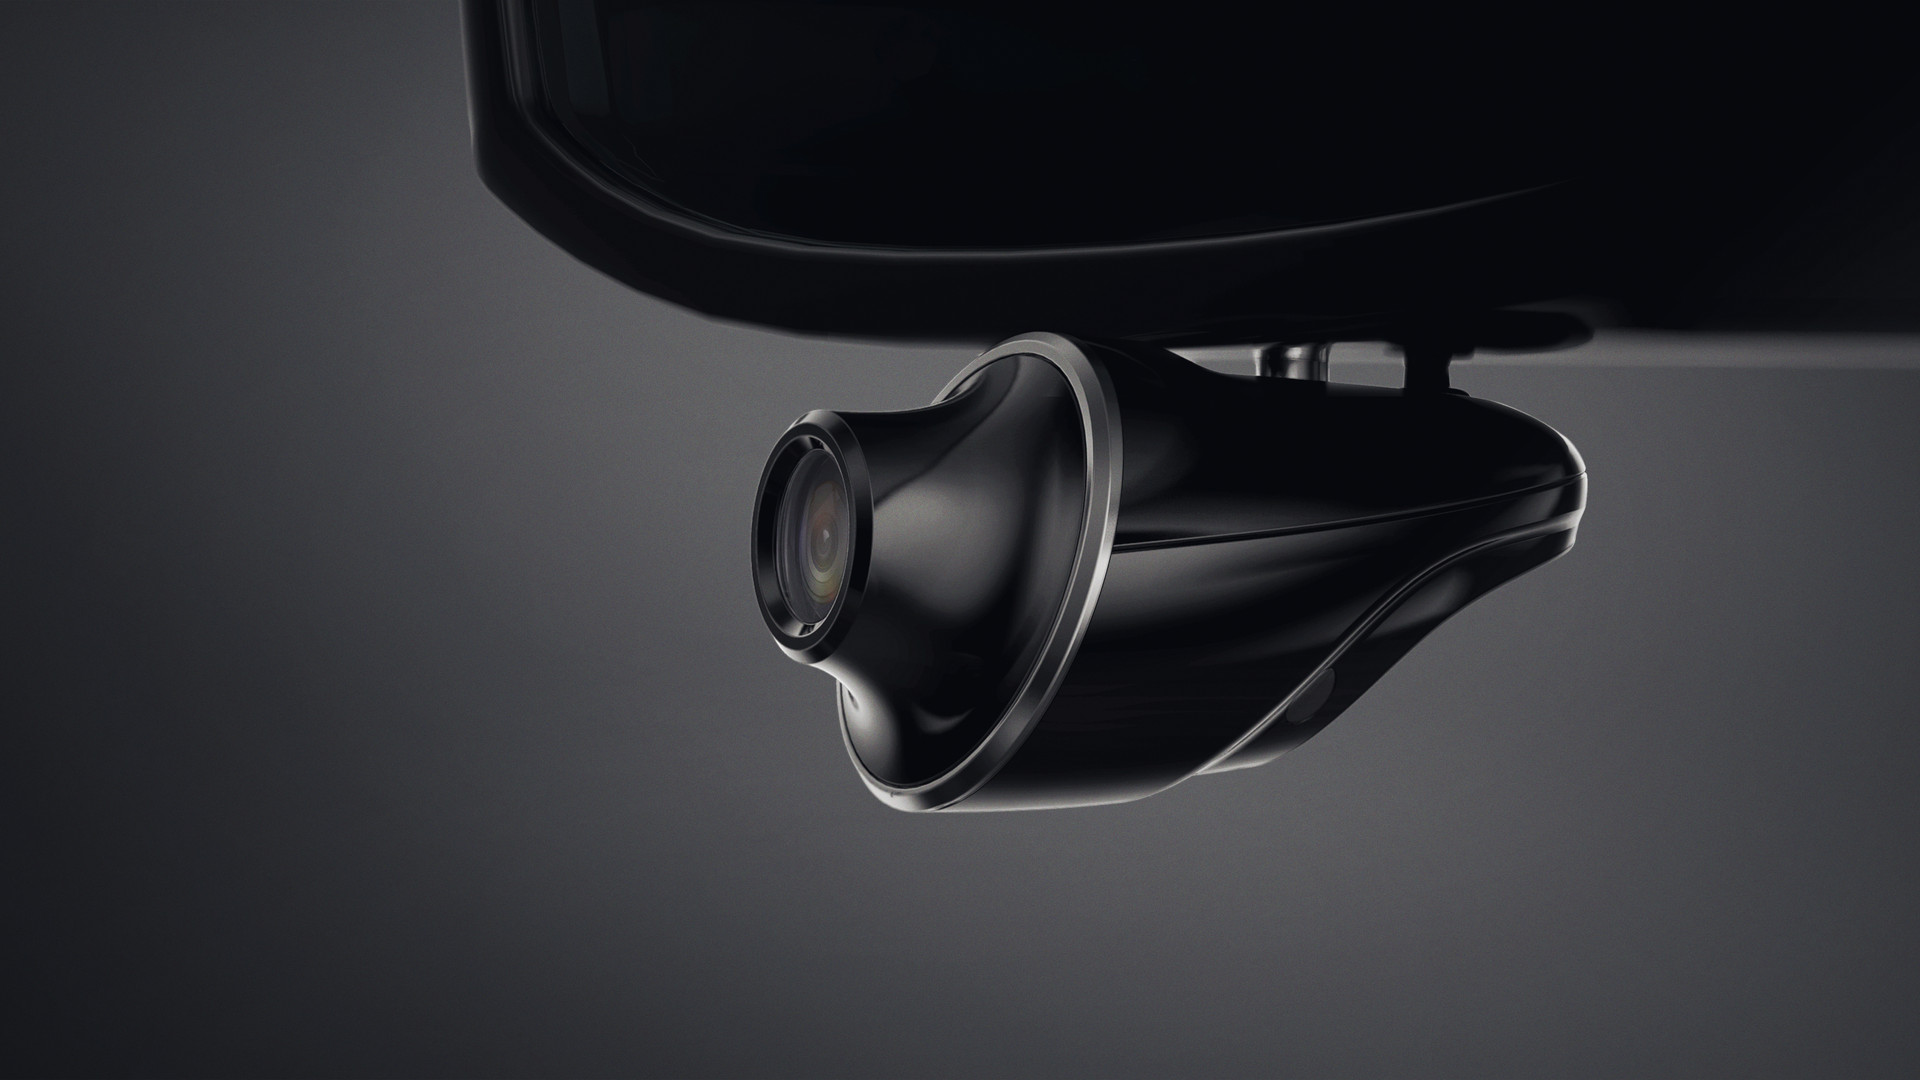 SIDE VIEW CAMERA